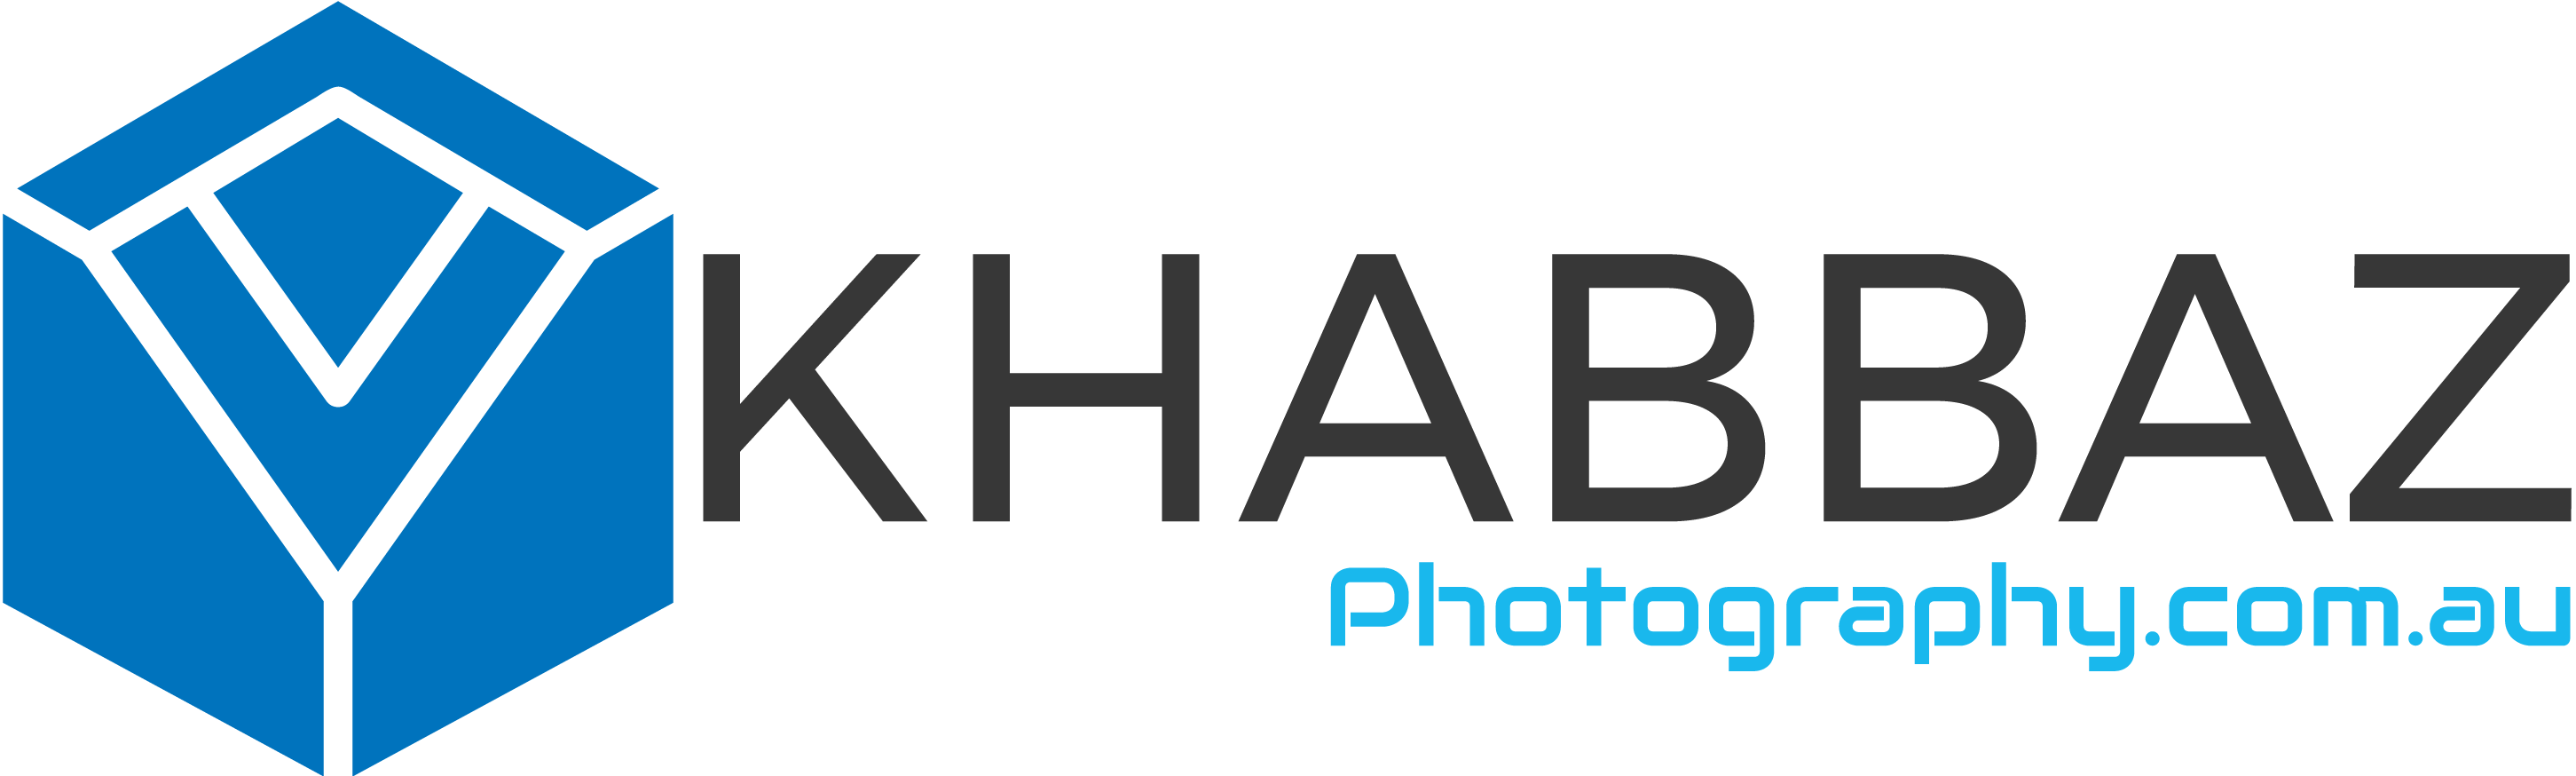 KHABBAZ PHOTOGRAPHY